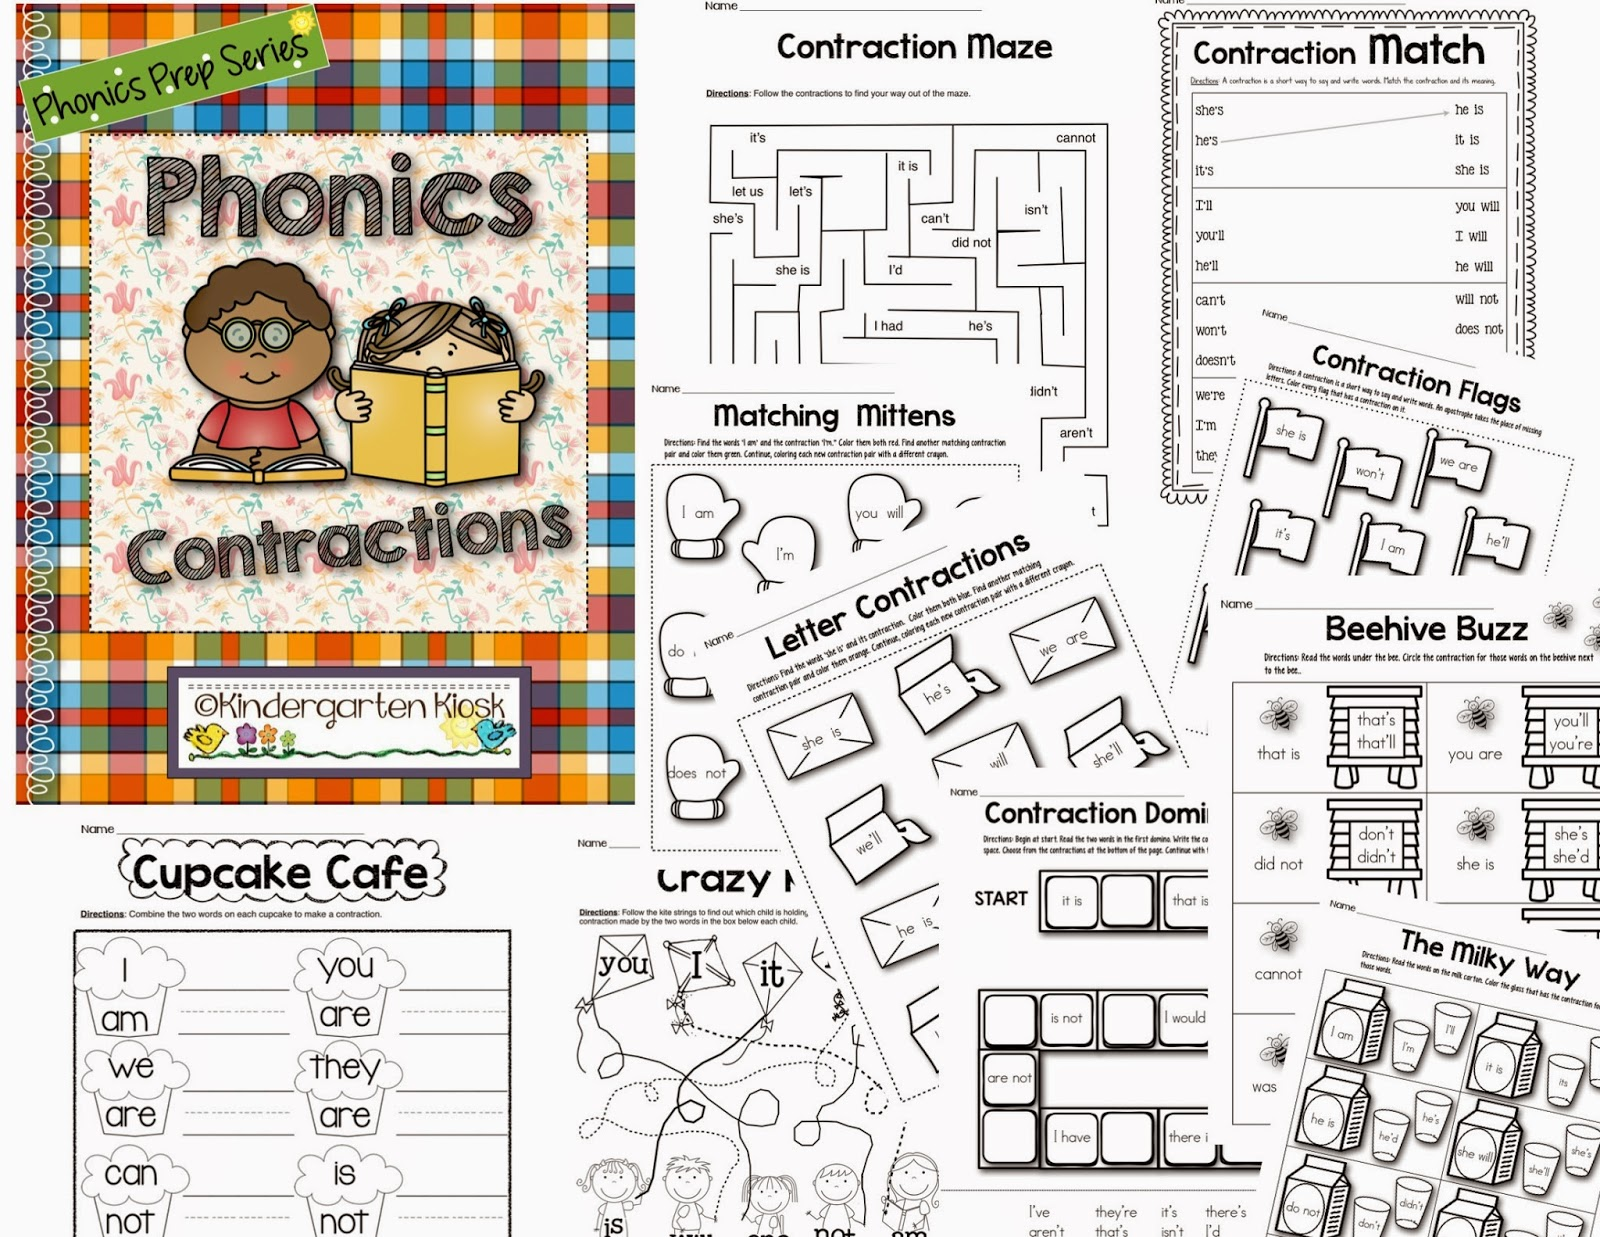 Kindergarten Kiosk Contraction Worksheets